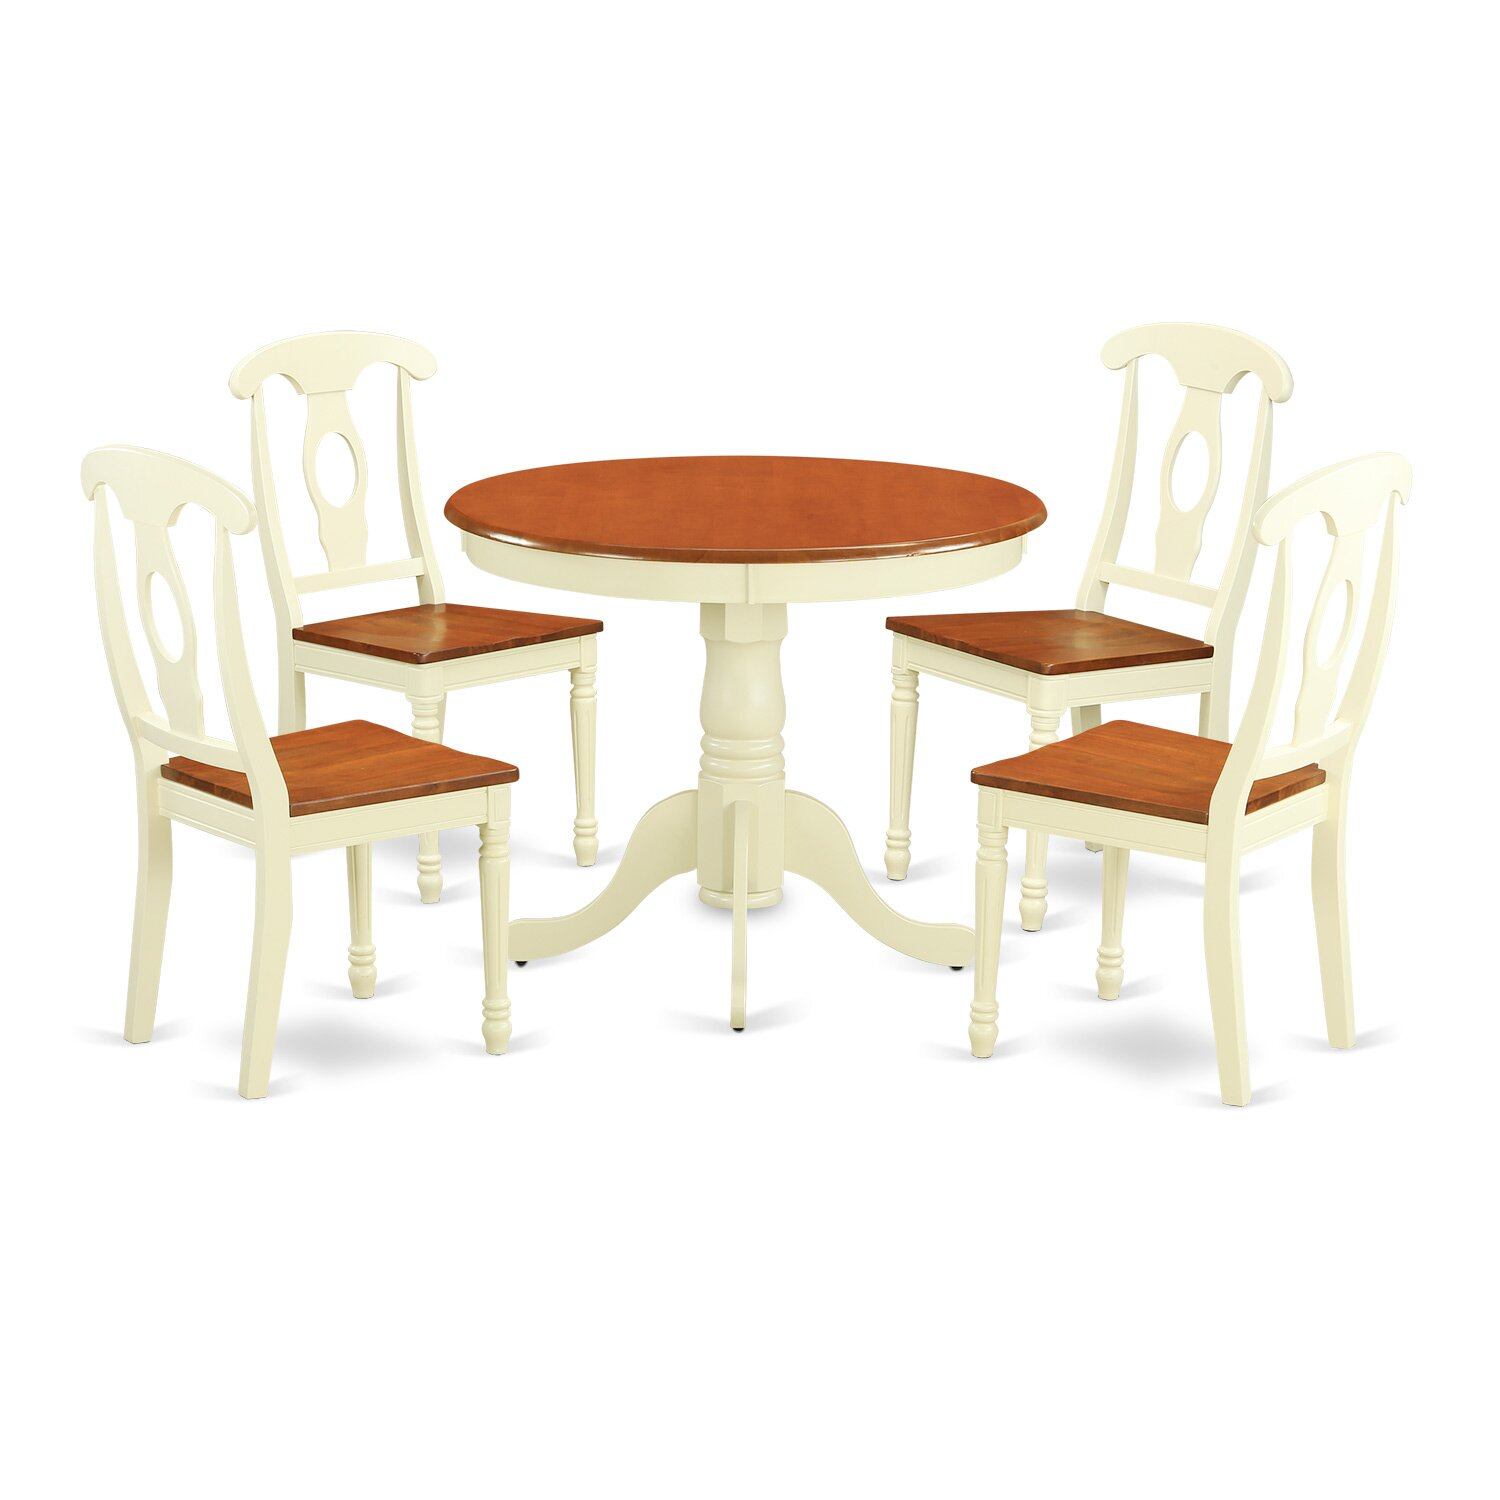 East west 5 piece dining set wayfair for Kitchen dining room chairs